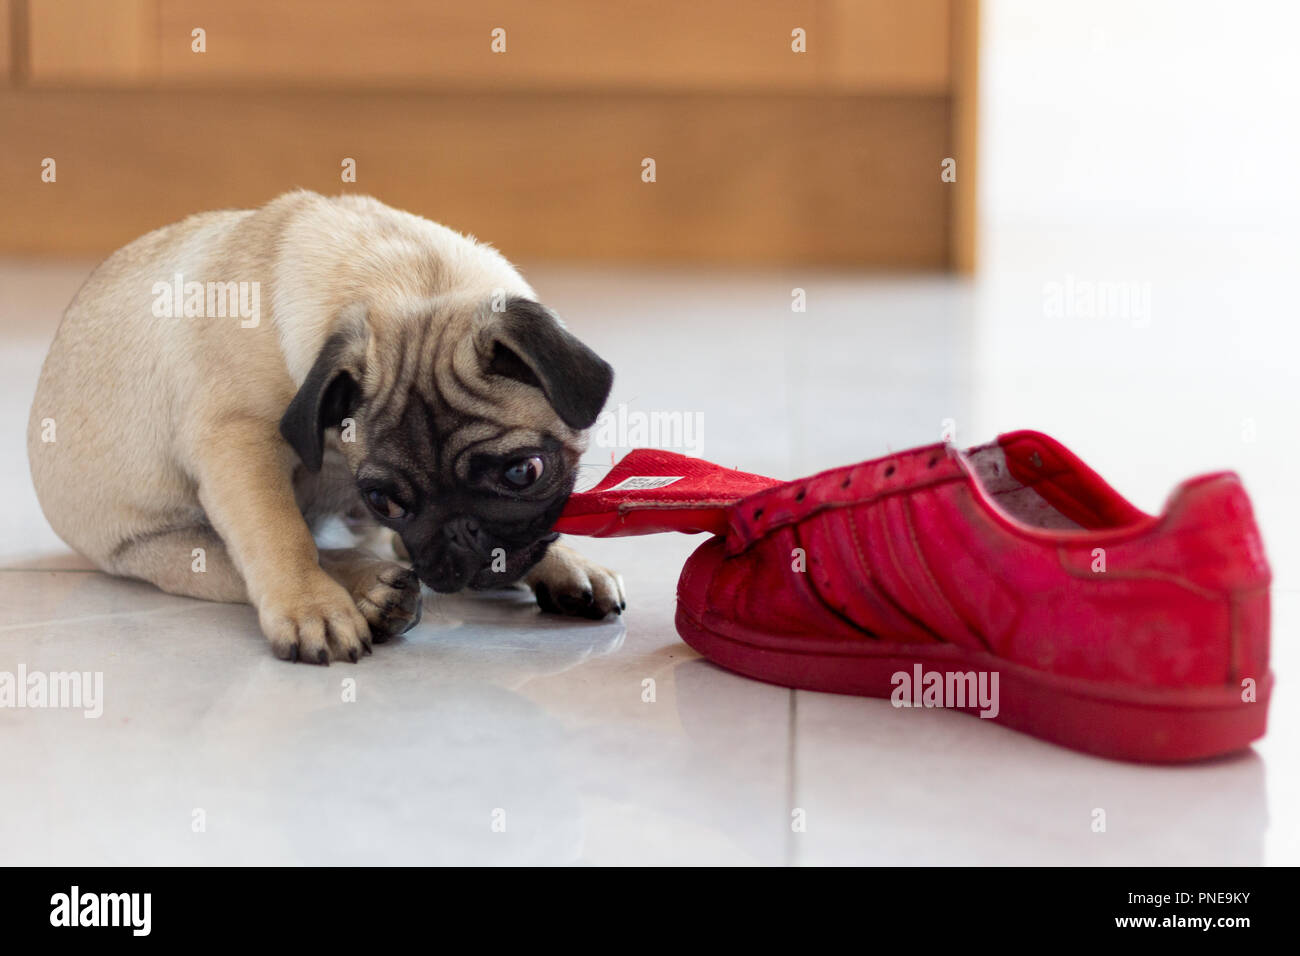 Cute Pug Puppy Playing with Red Shoe - Stock Image